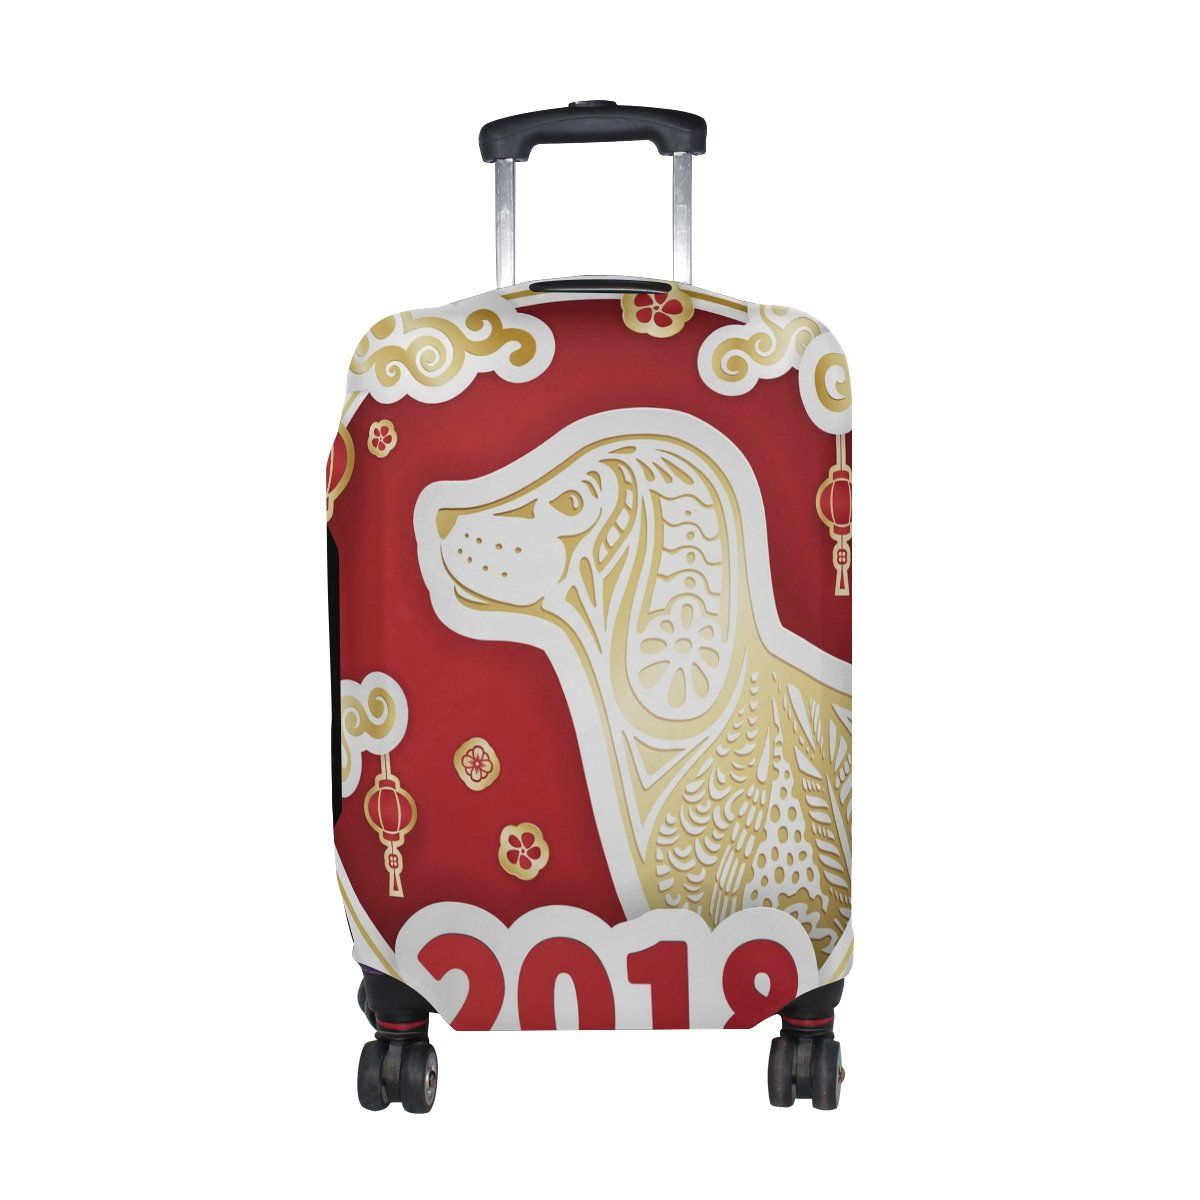 Happy Chinese New Year 2018 Of The Dog Travel Luggage Protector Baggage Suitcase Cover Fits 22-24 Inch Luggage